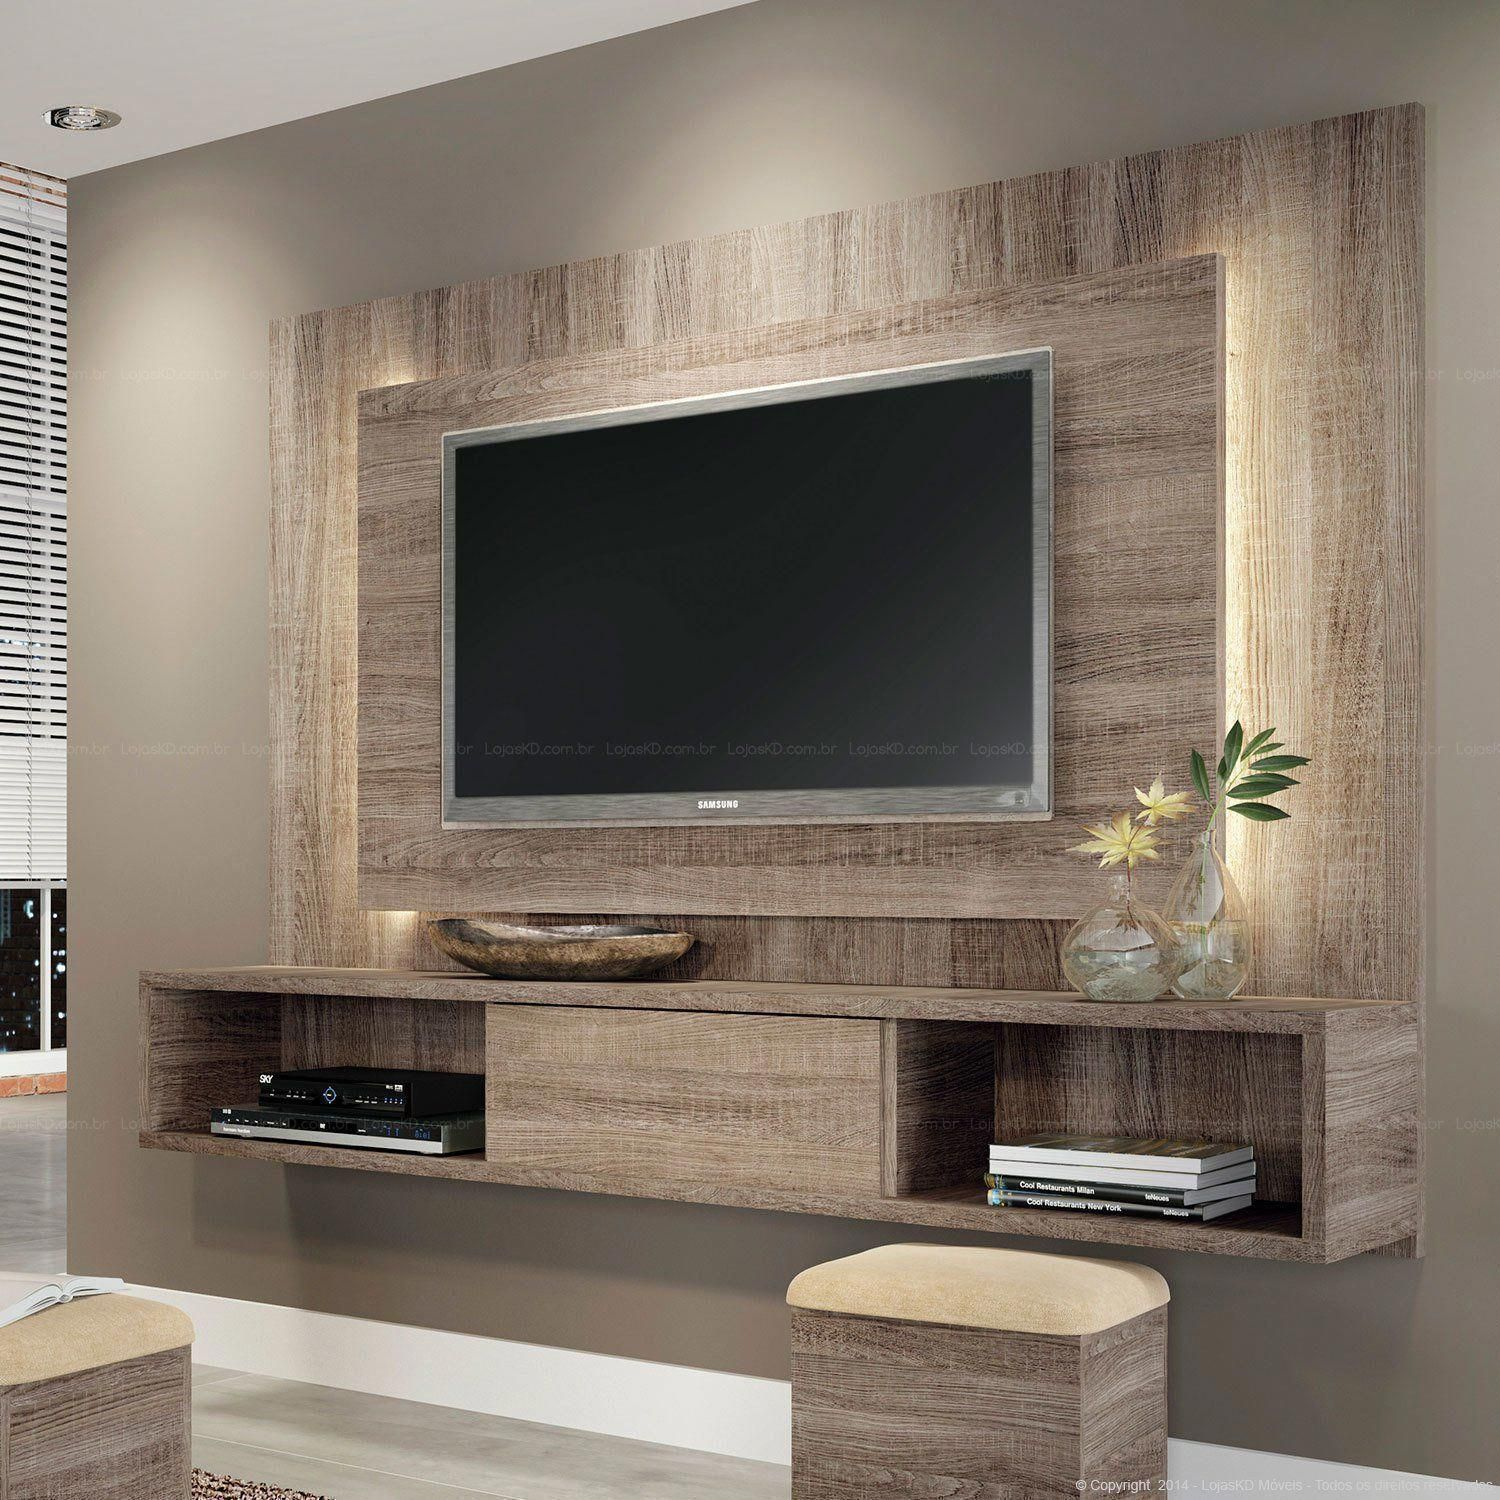 Tv Wall Mount Ideas For Living Room Awesome Place Of Television Nihe And Chic Designs Modern Decorating Id Living Room Tv Wall Tv Wall Design Living Room Tv #wall #designs #ideas #for #living #room